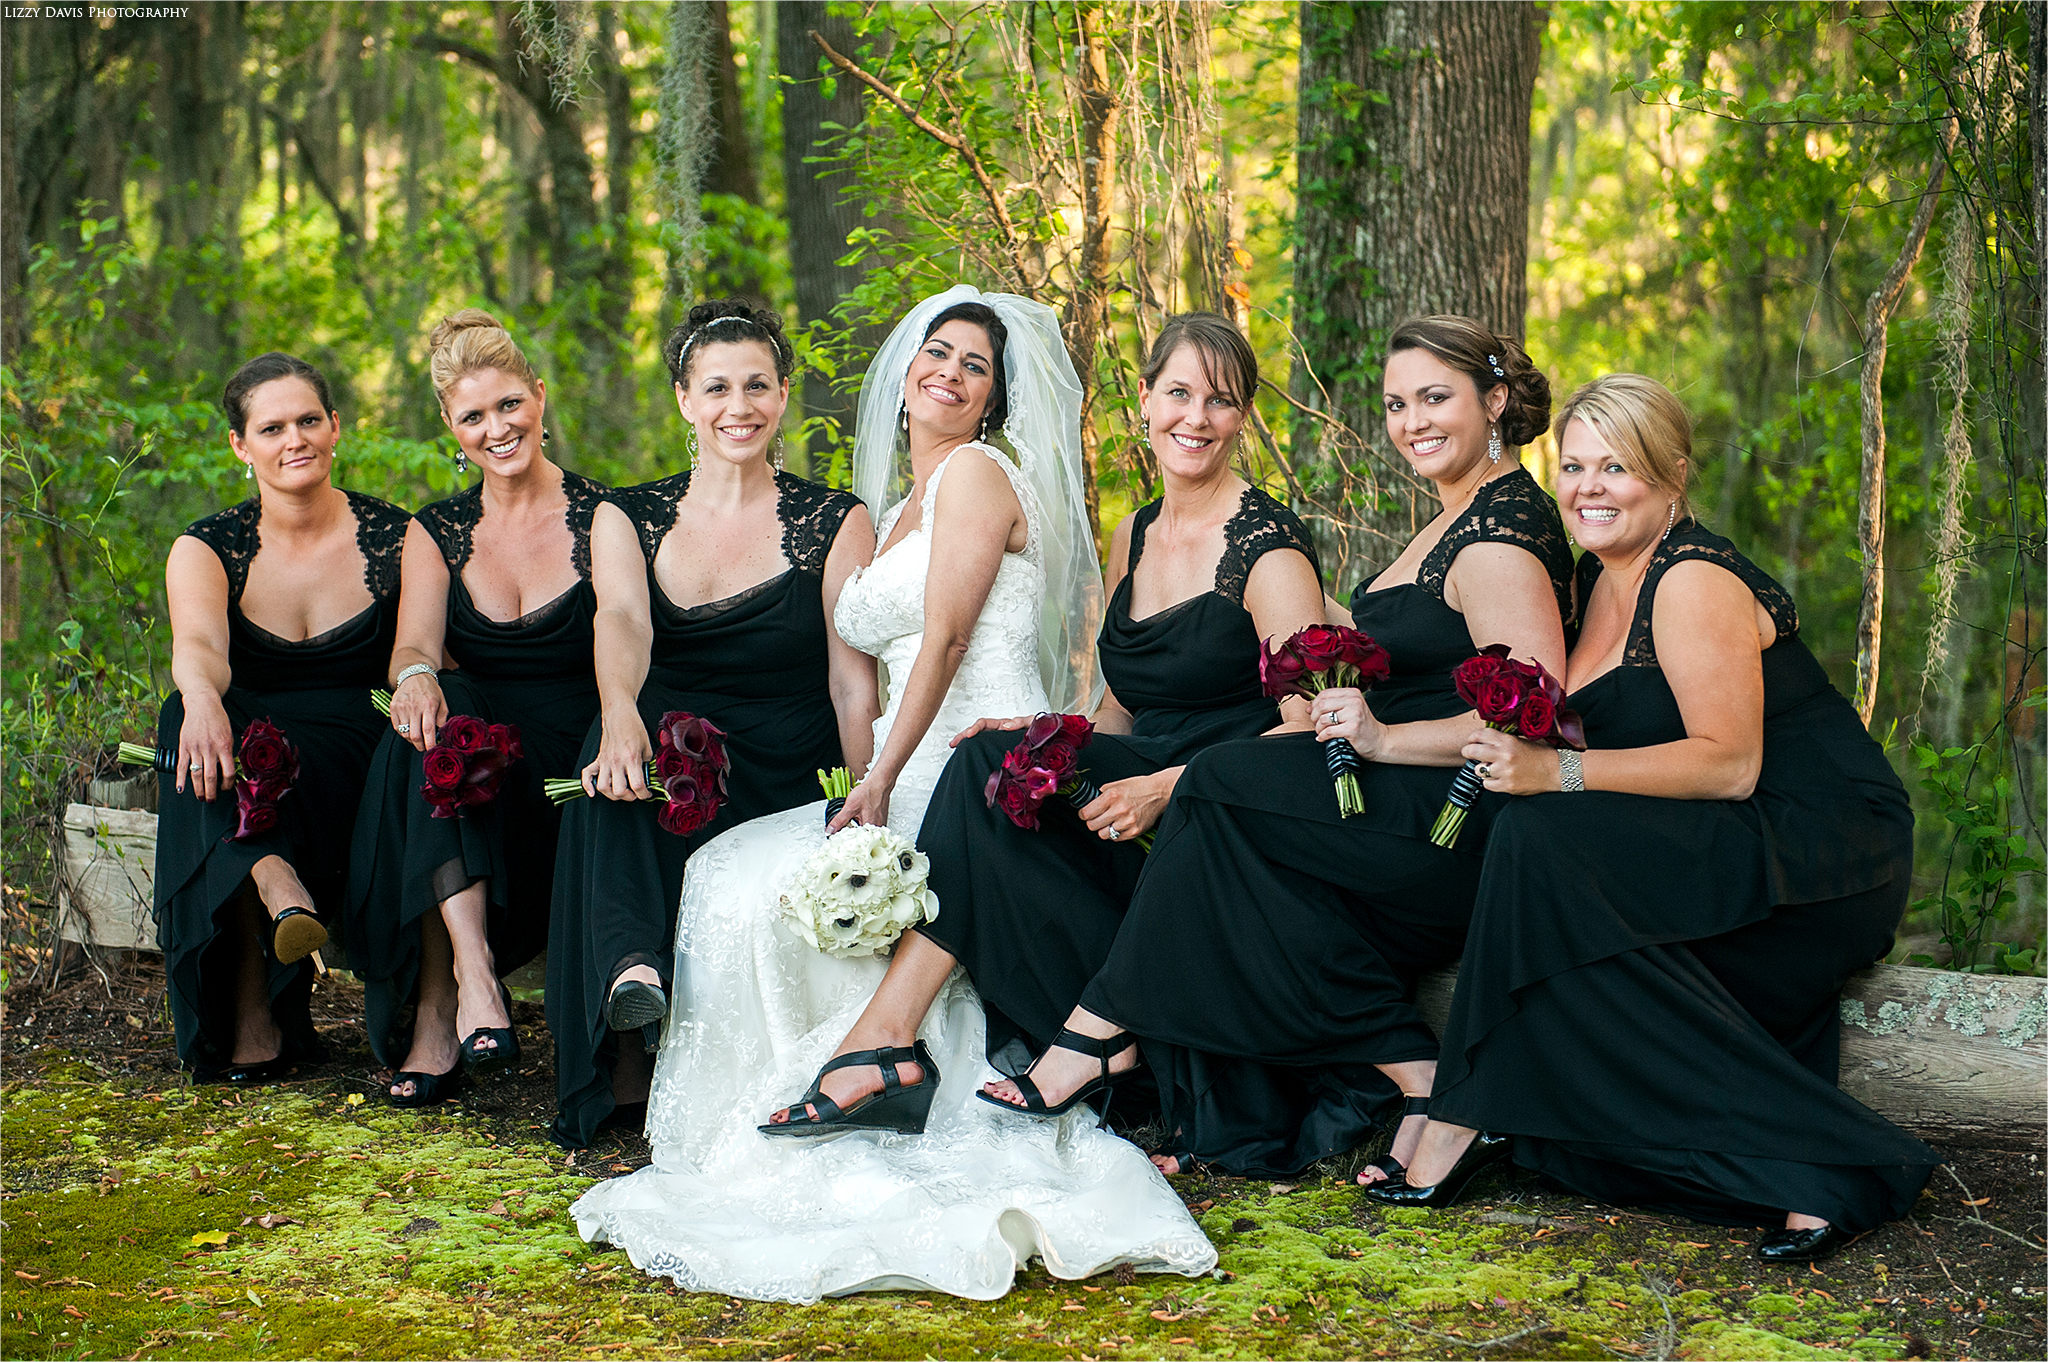 Elegant photo of a bride with her bridal party.